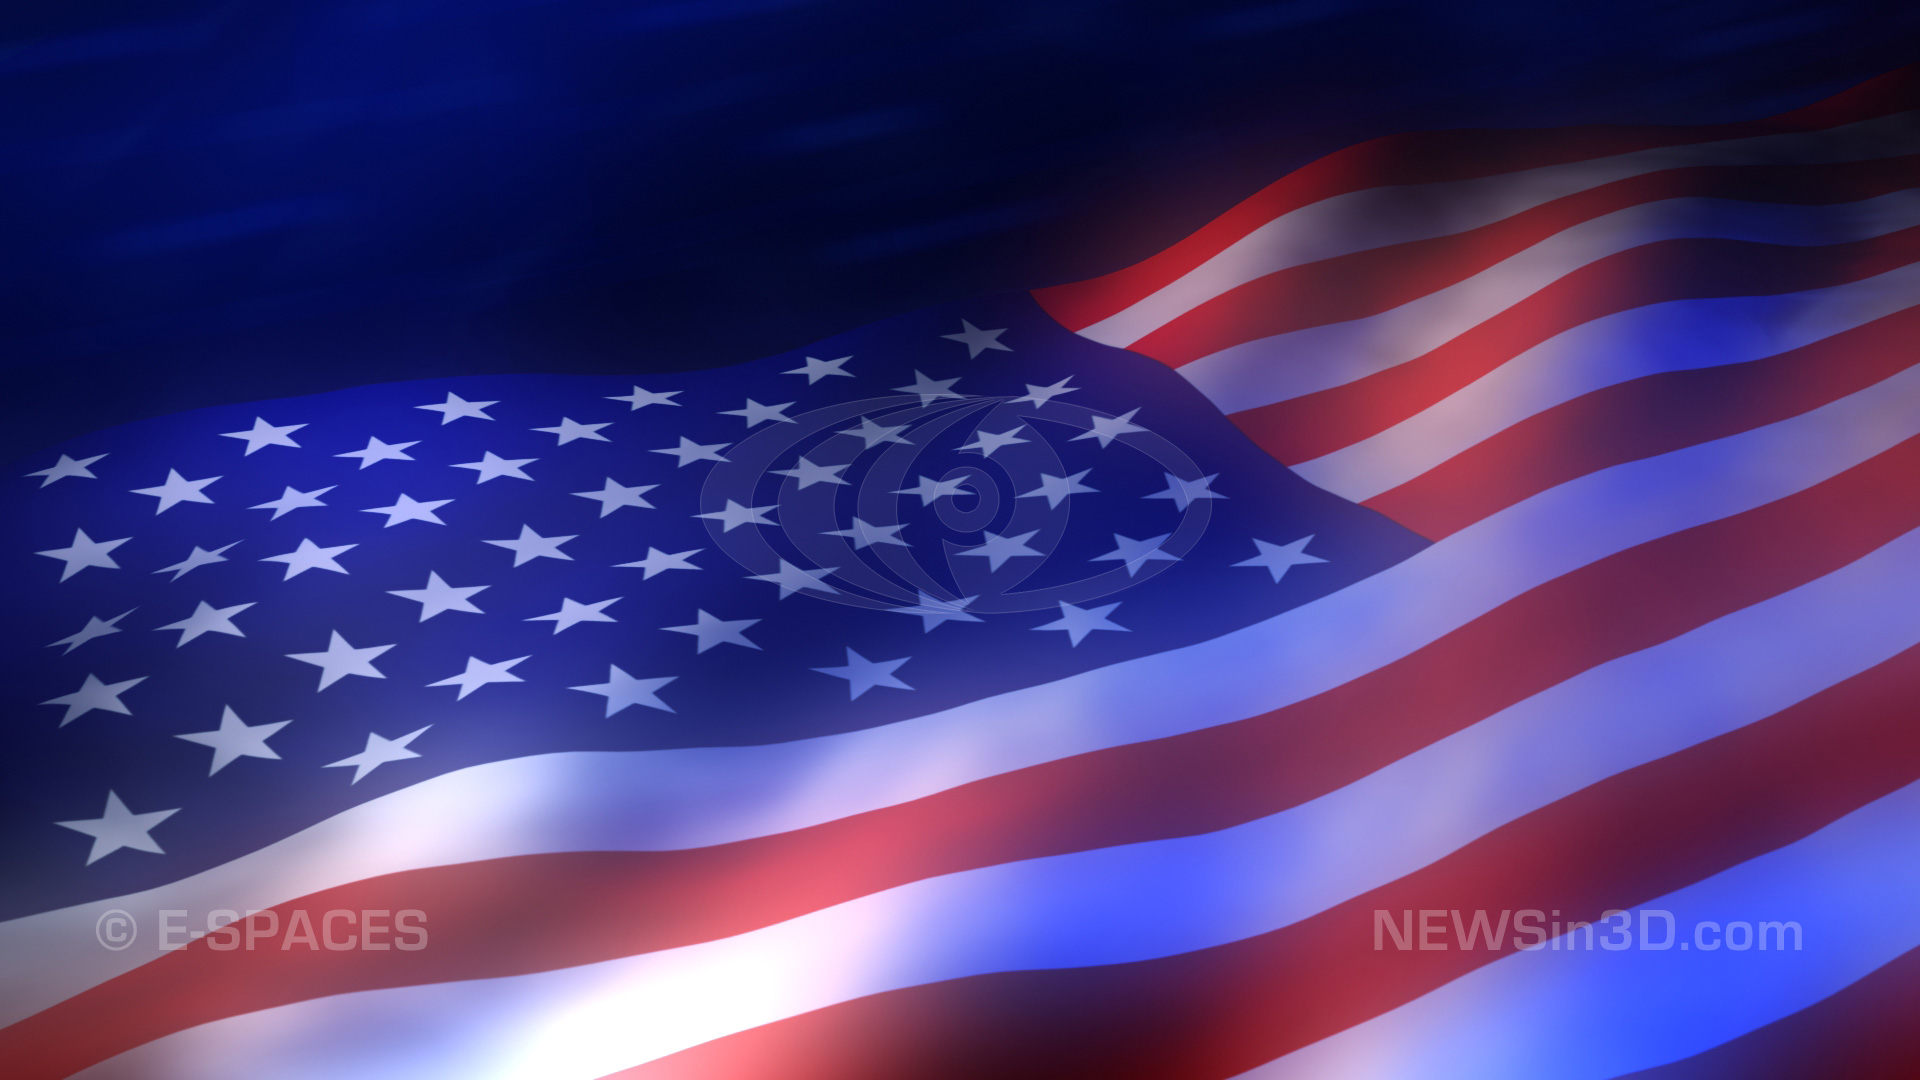 Active Desktop Wallpaper American Flag